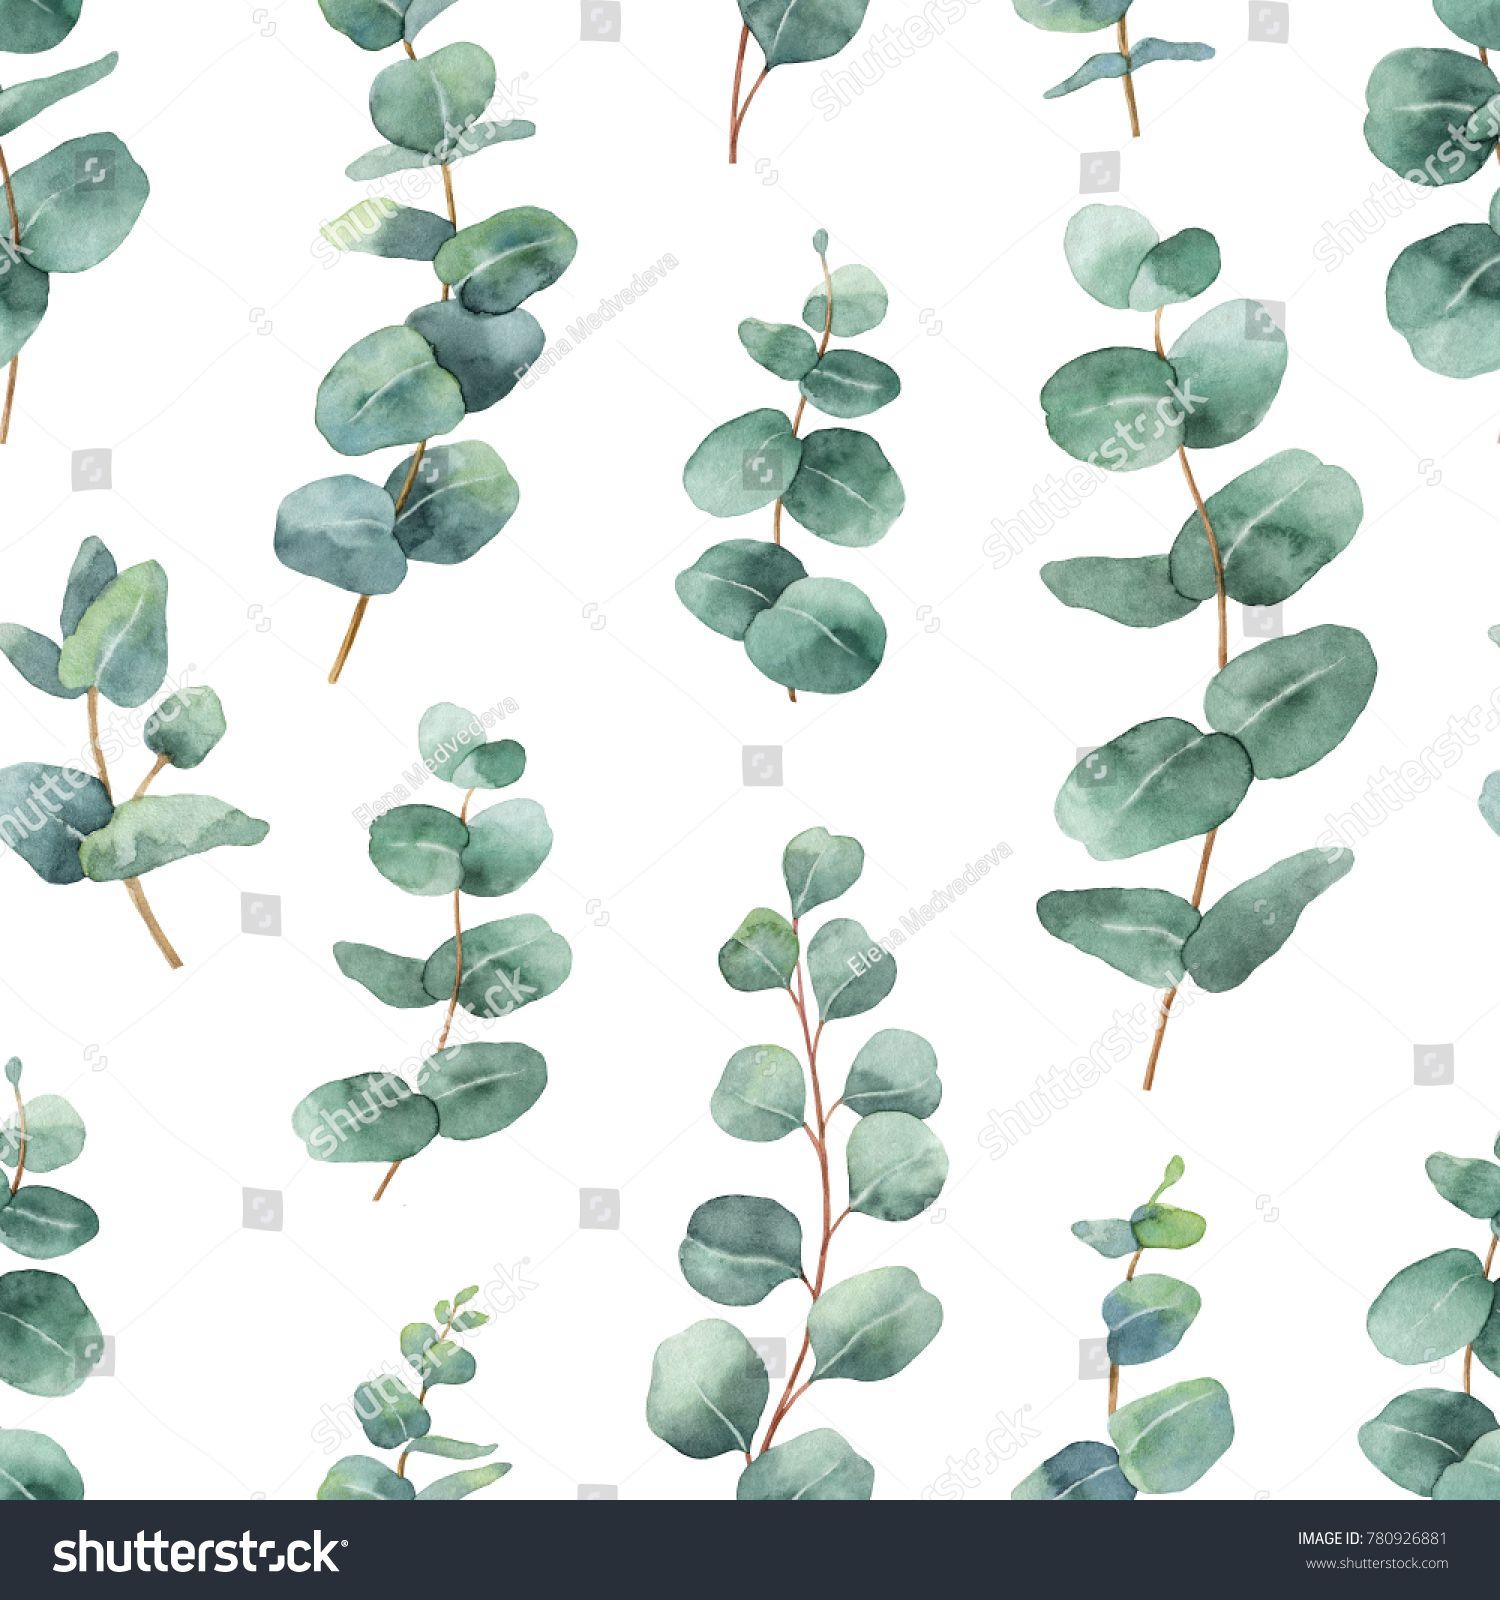 Watercolor seamless pattern with silver dollar eucalyptus.